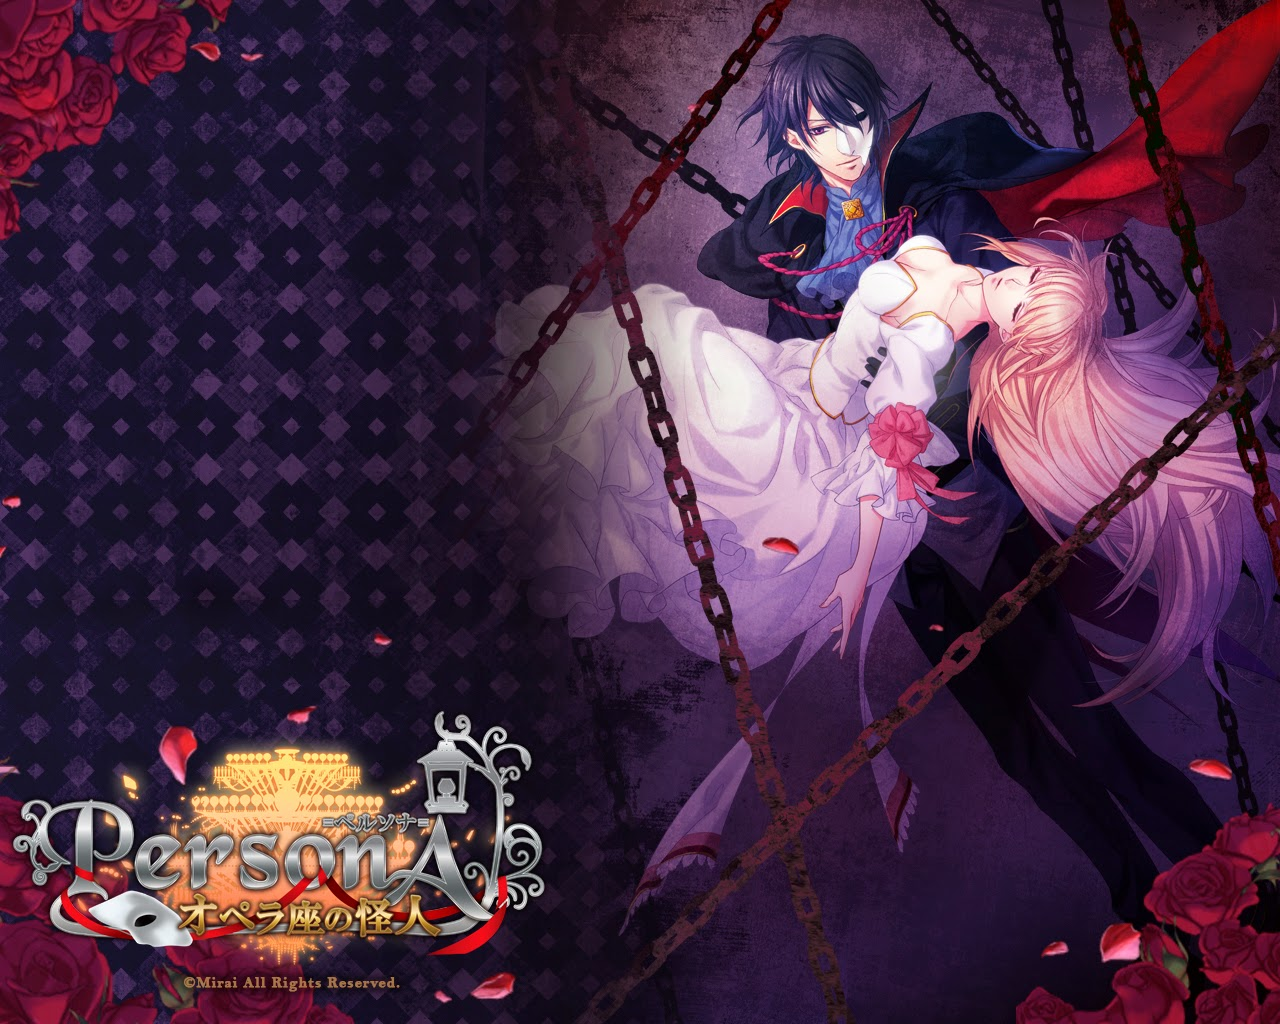 http://sandeian.wordpress.com/2012/08/24/otome-game-review-persona-opera-za-no-kaijin/